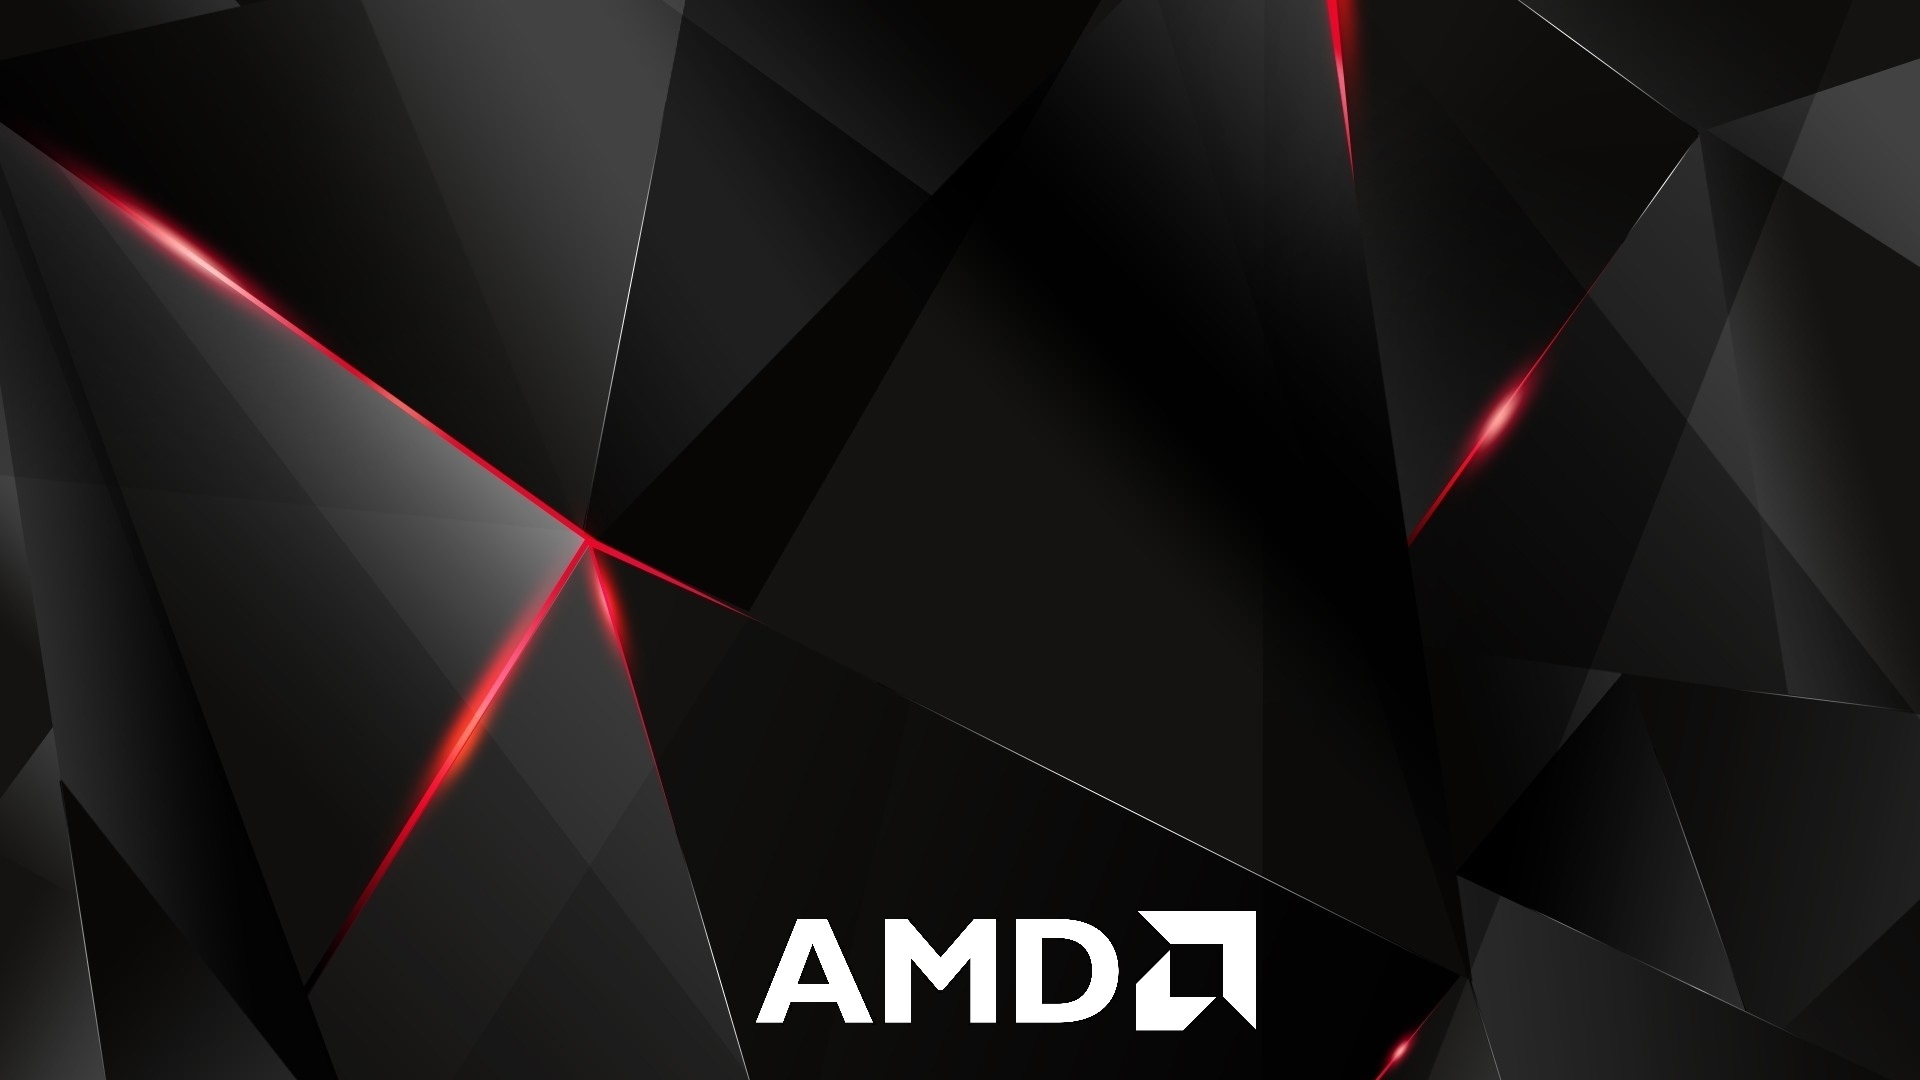 AMD Driver 16 1 1 Hotfix To Resolve Fallout 4 Crossfire Issues